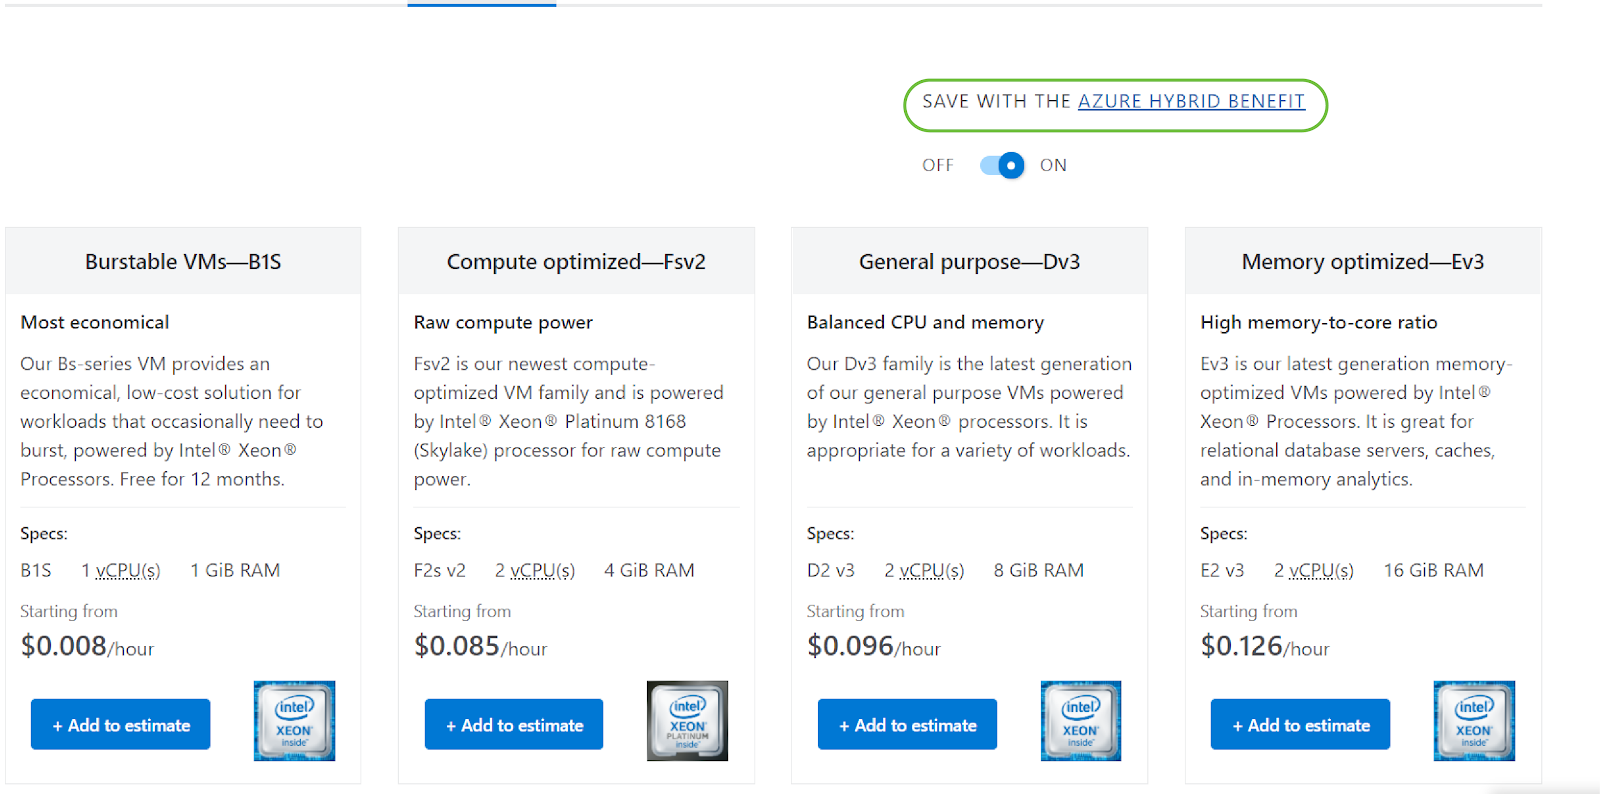 Hybrid Benefit Options in Azure - Azure cost optimization